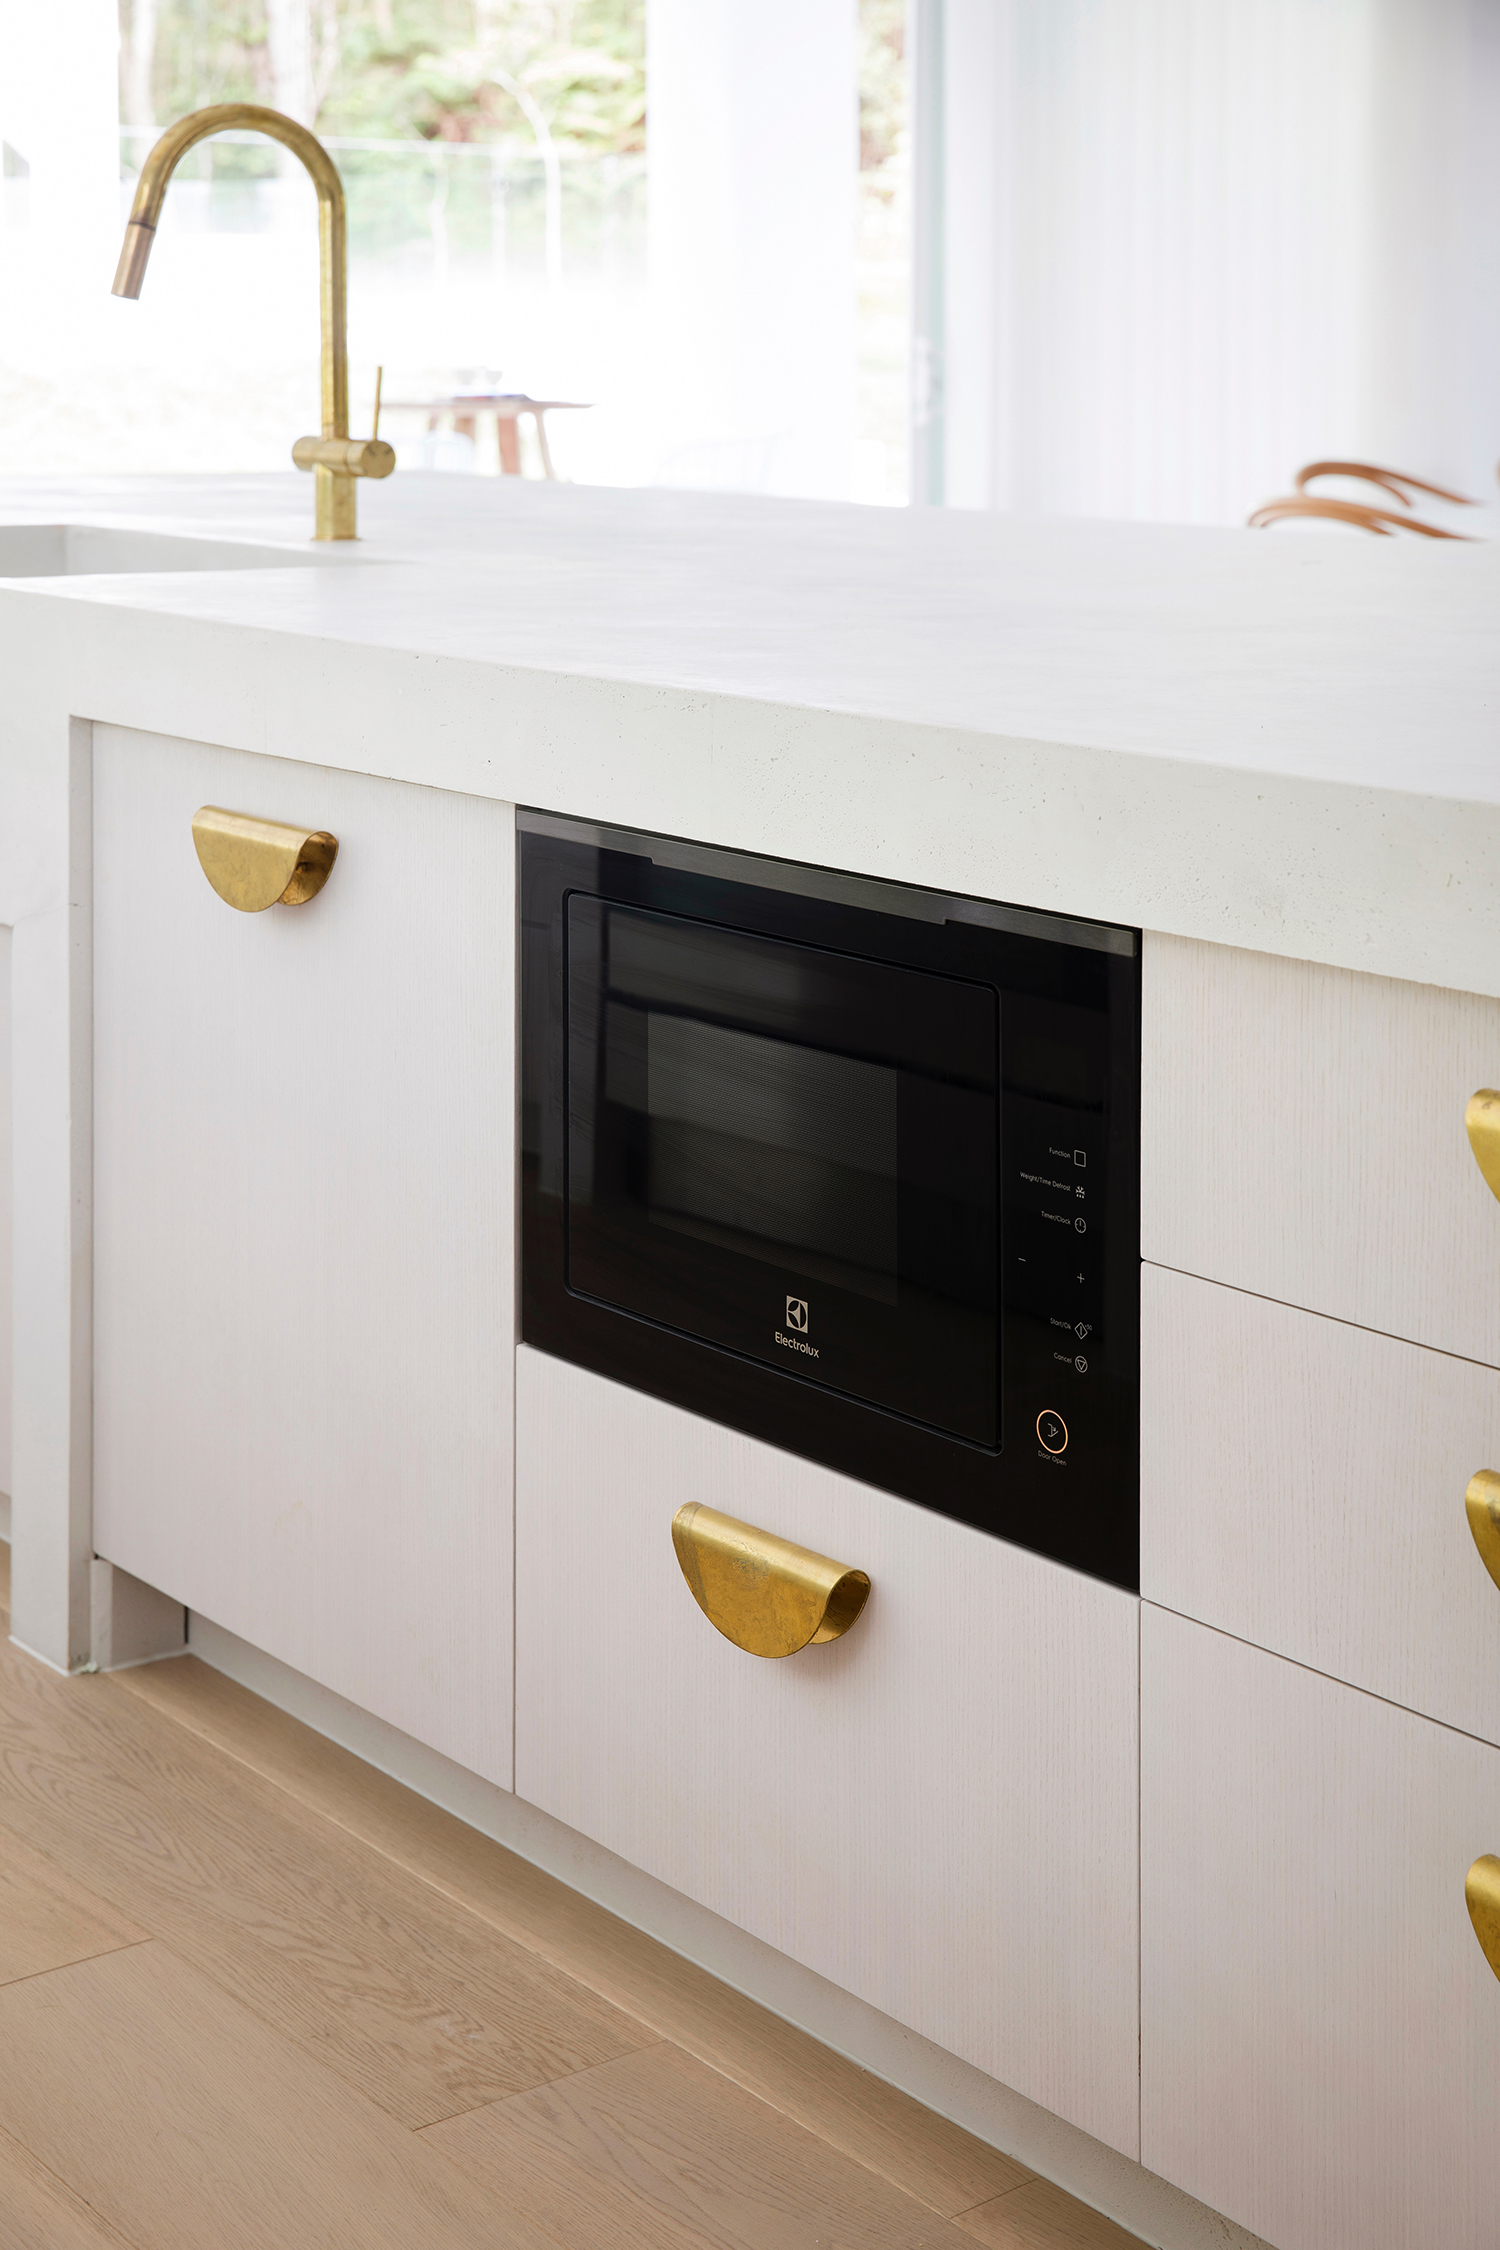 That's the Electrolux integrated dishwasher hidden to the left of the built-in microwave.